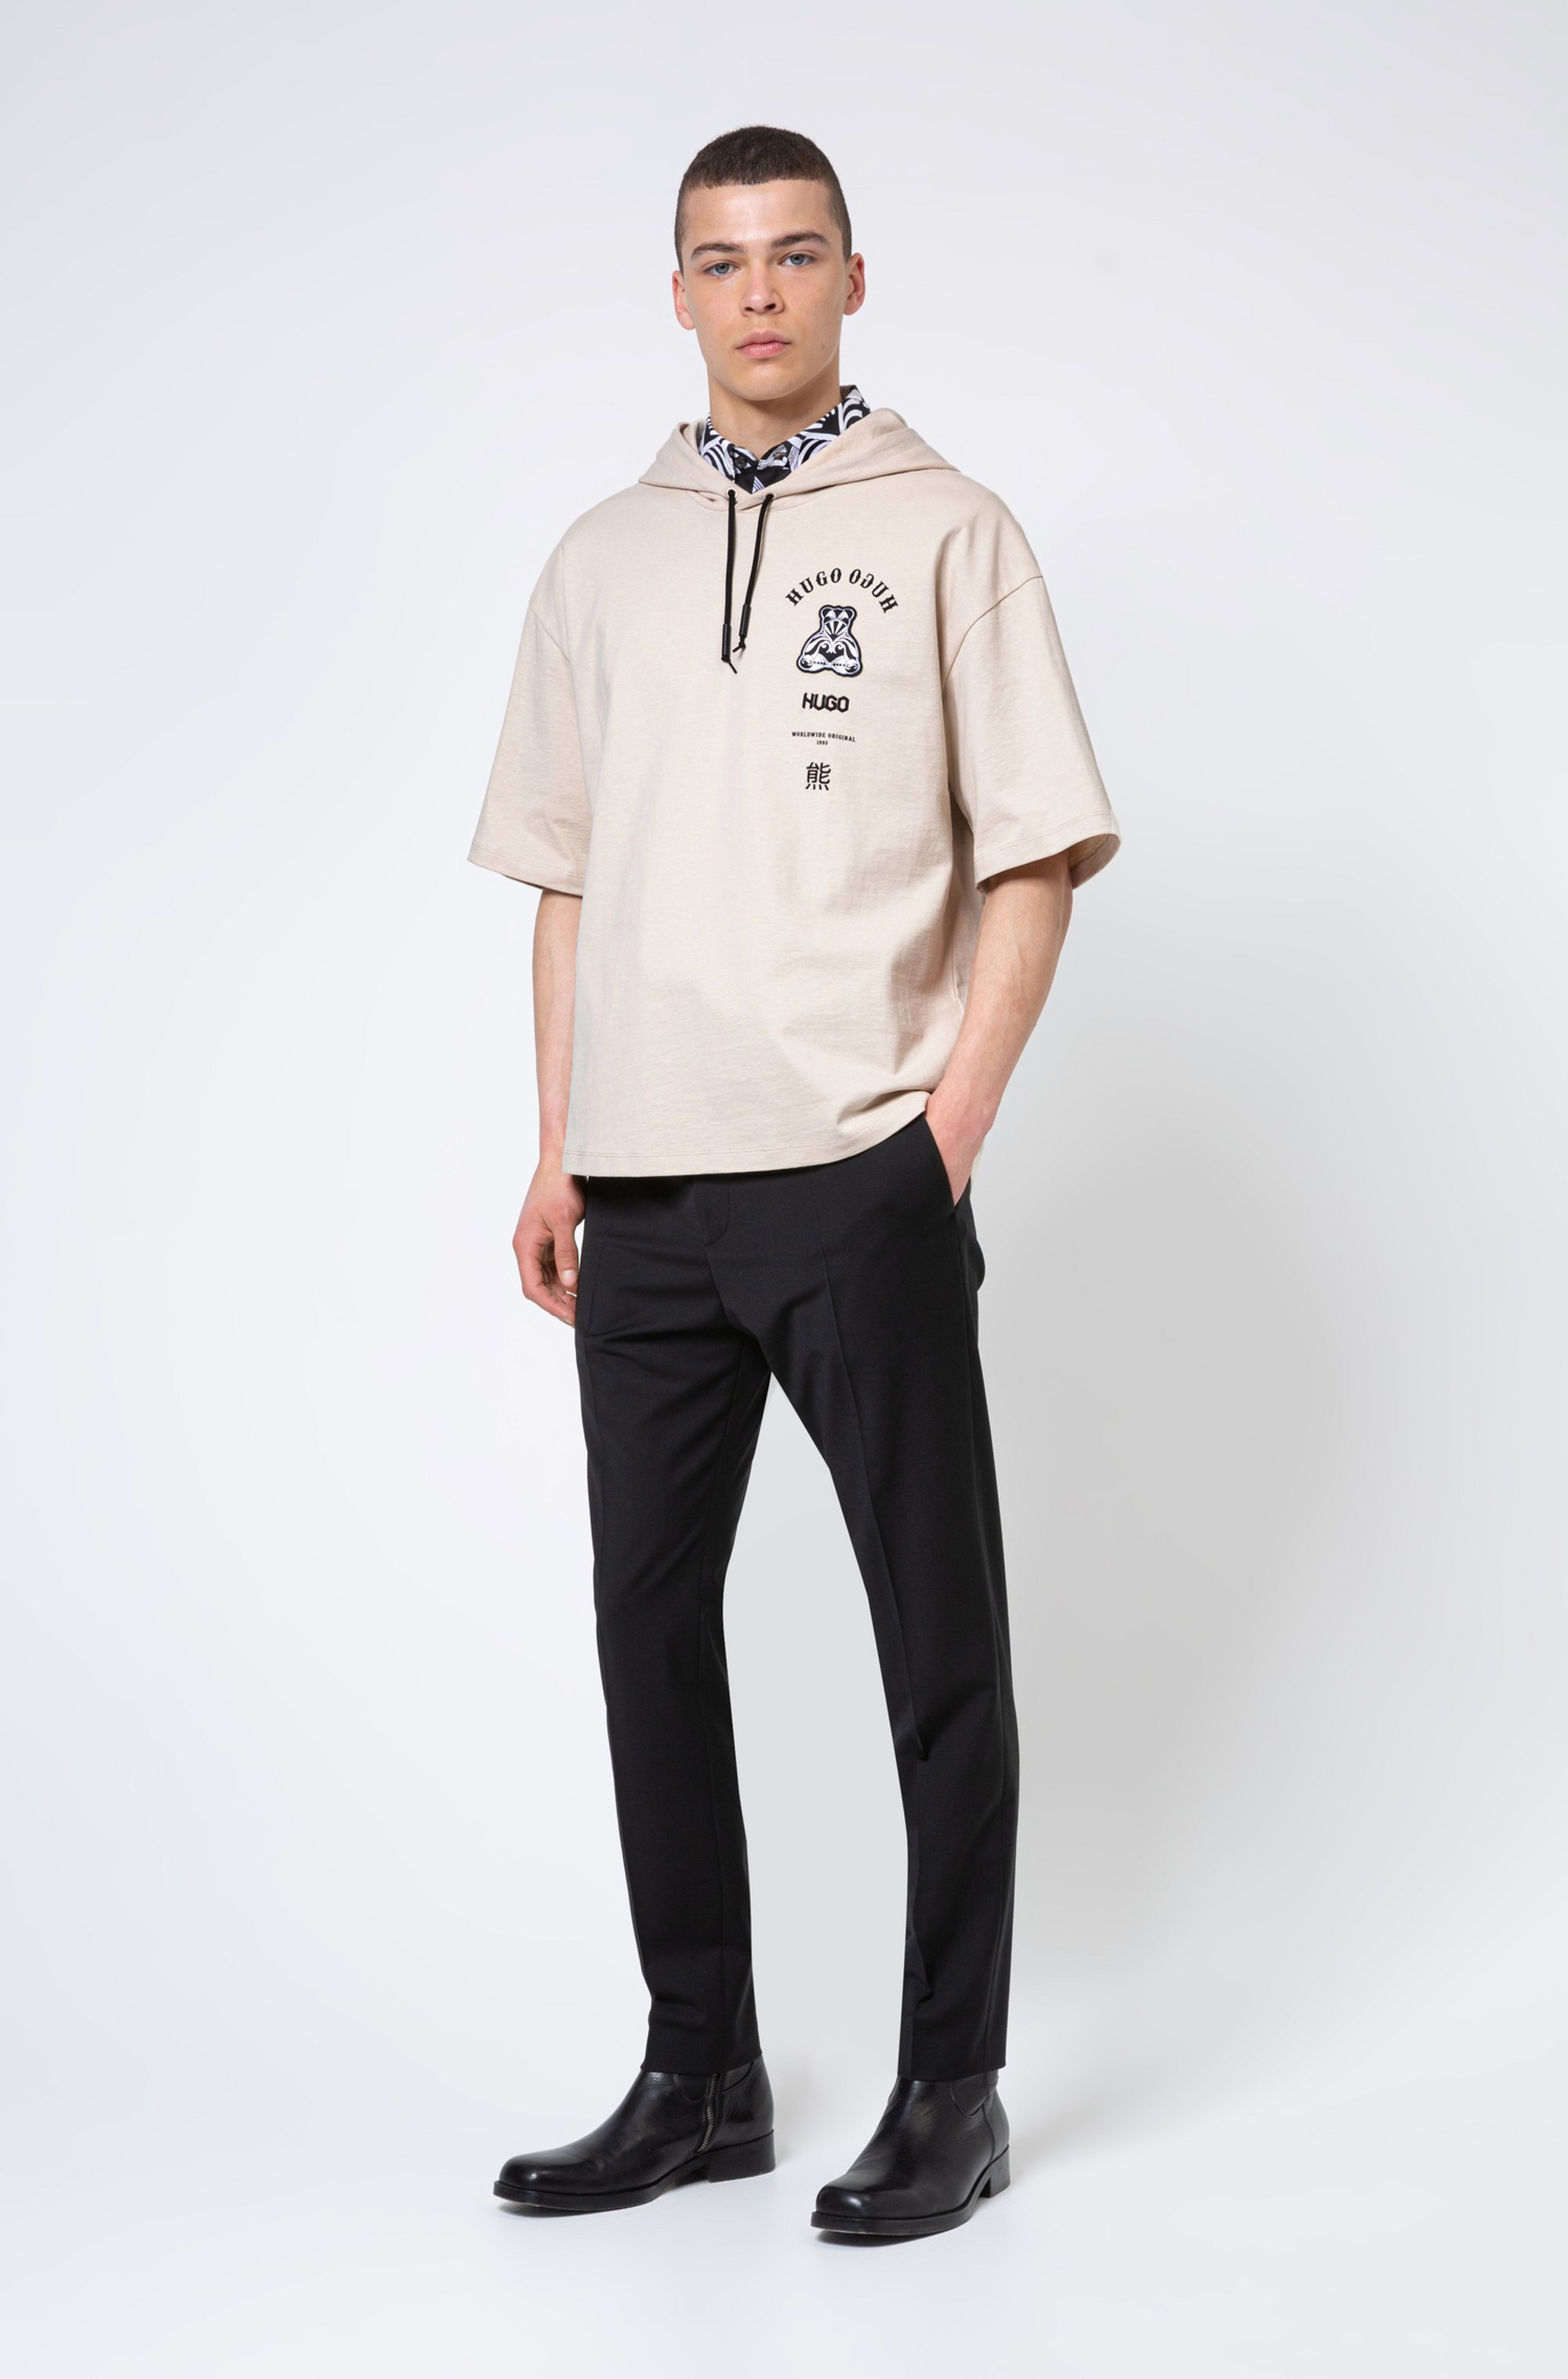 Short-sleeved hooded sweatshirt with collection-themed artwork